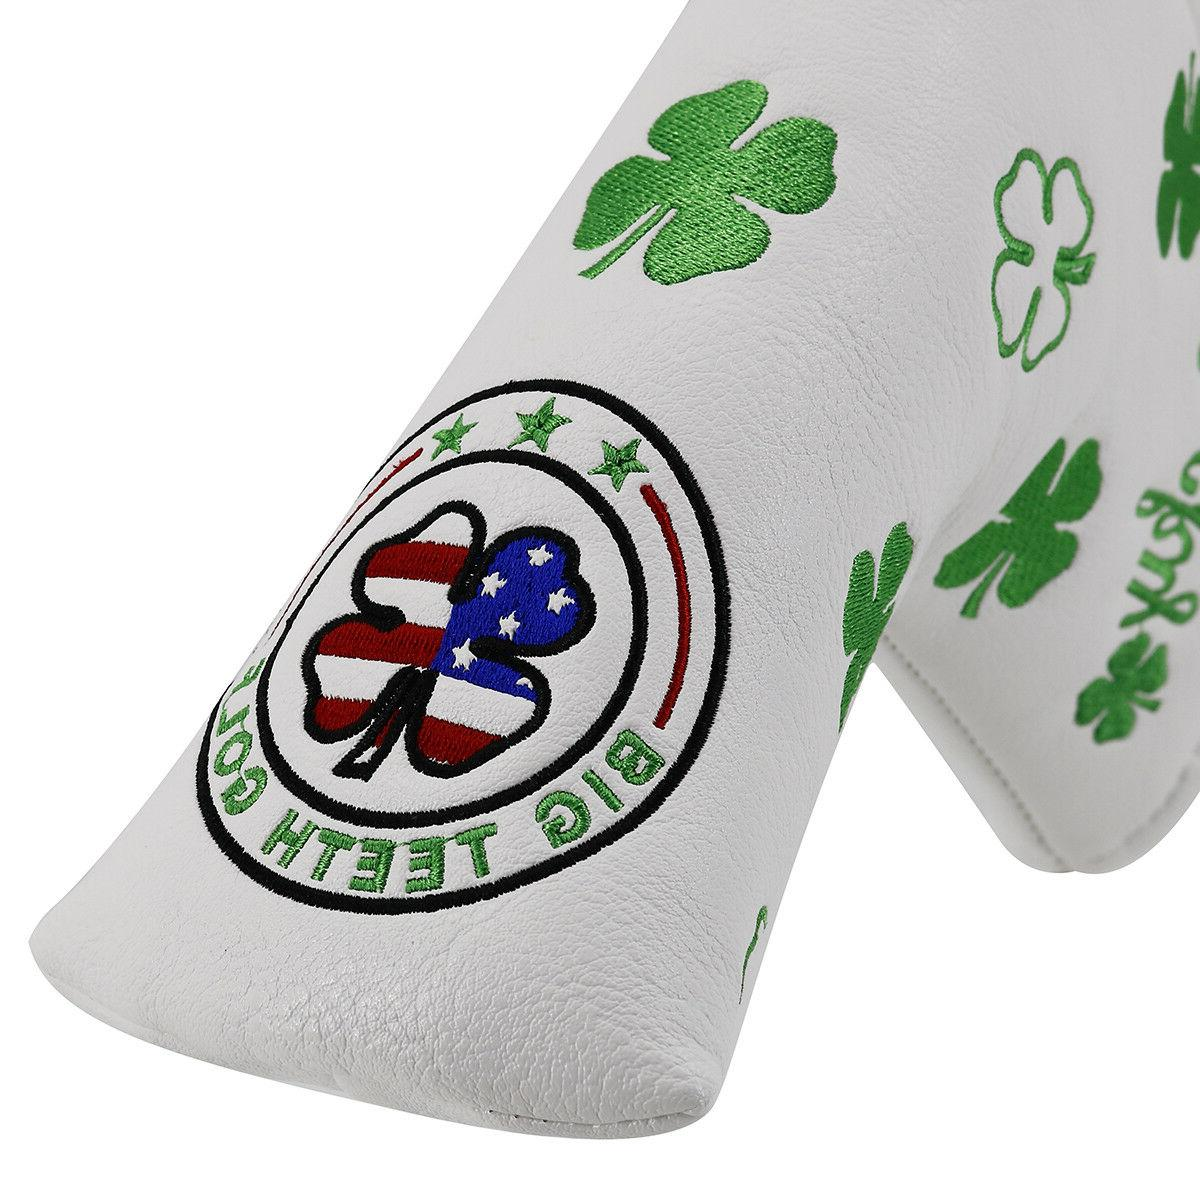 Putter Headcover For Scotty Blade New magnetic